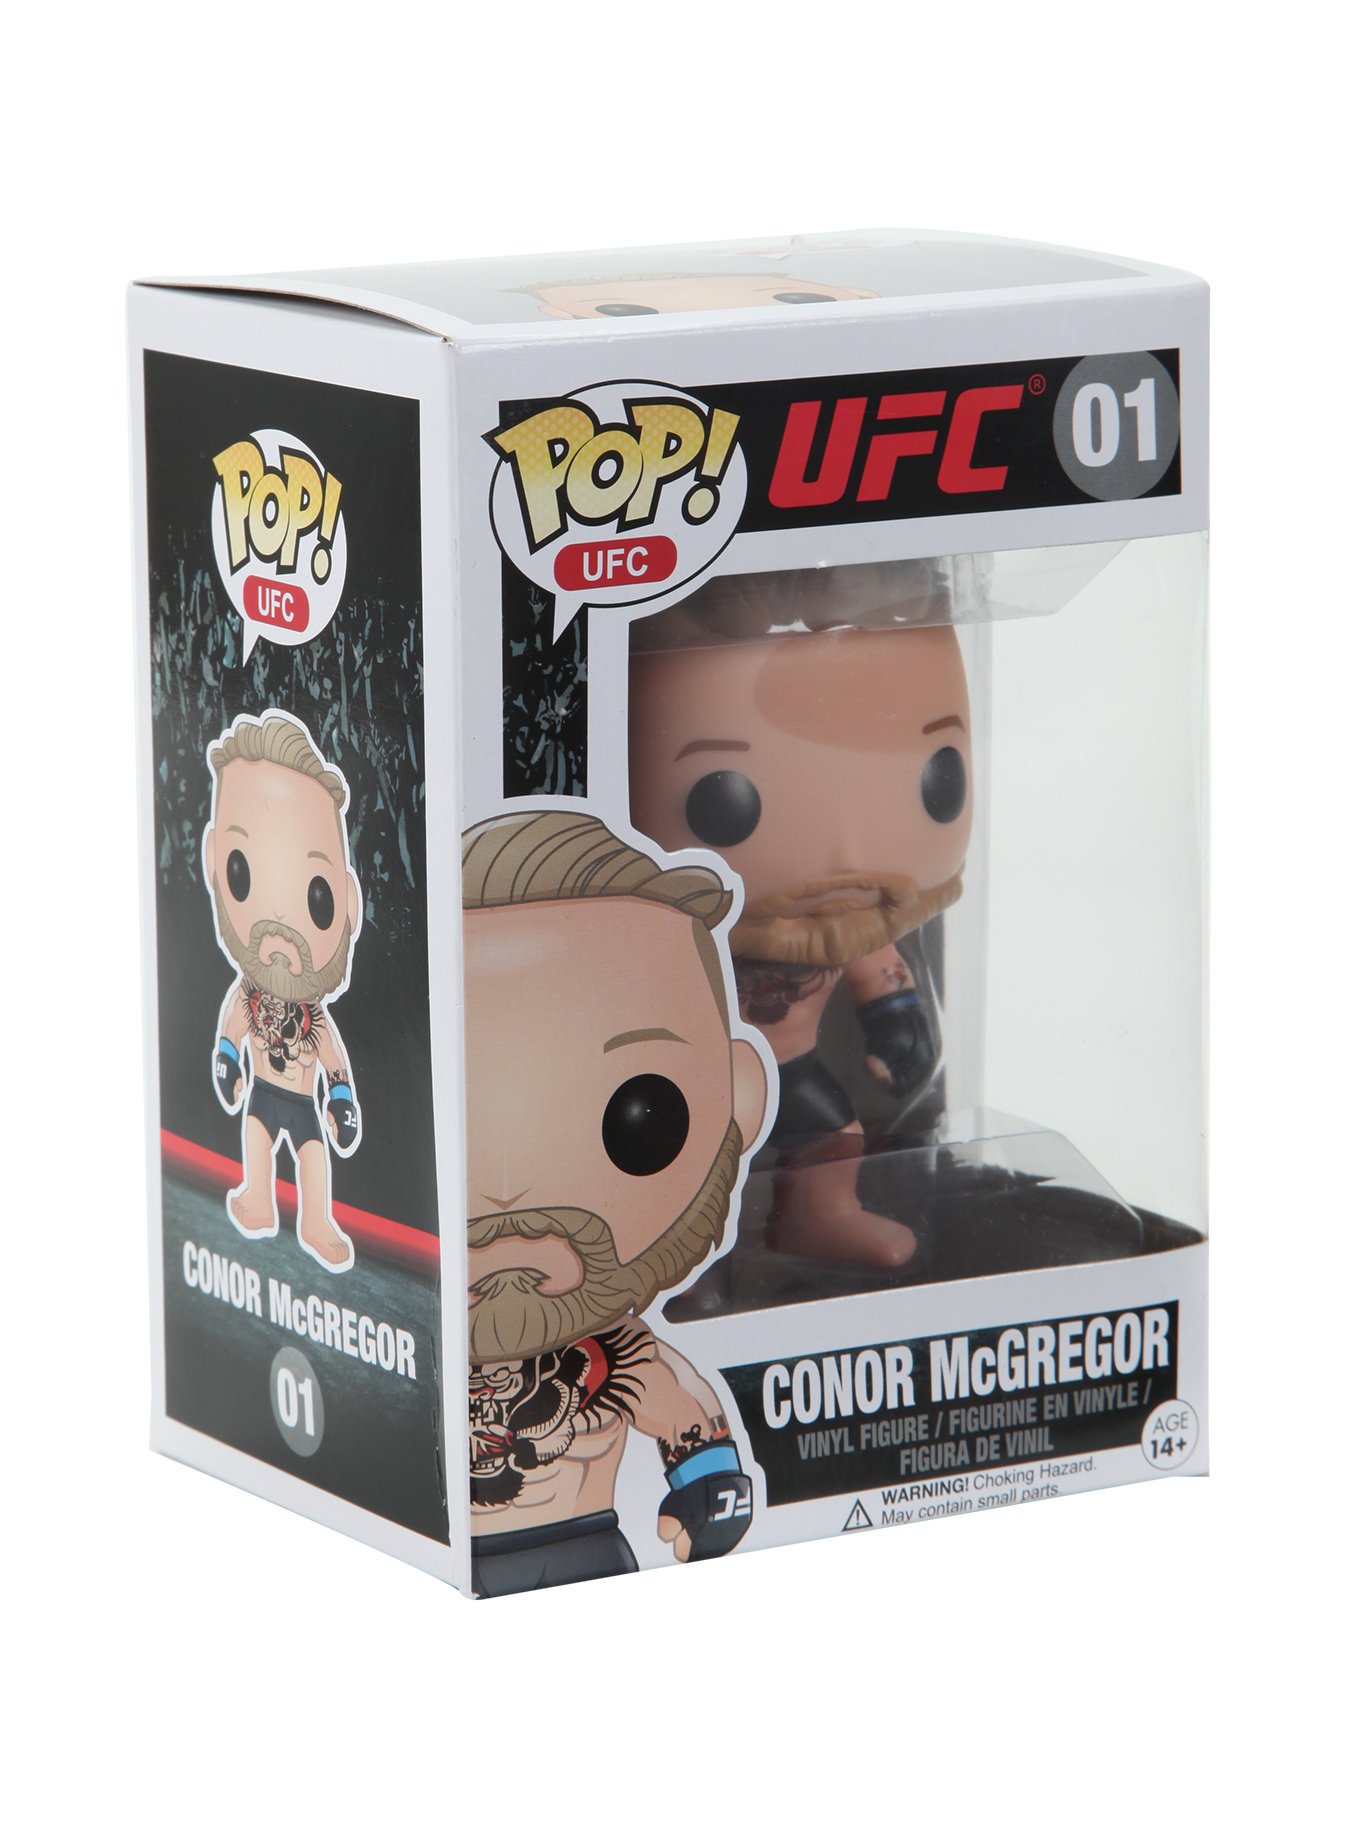 Funko Pop Ufc Ultimate Fighting Conor Mcgregor Vinyl